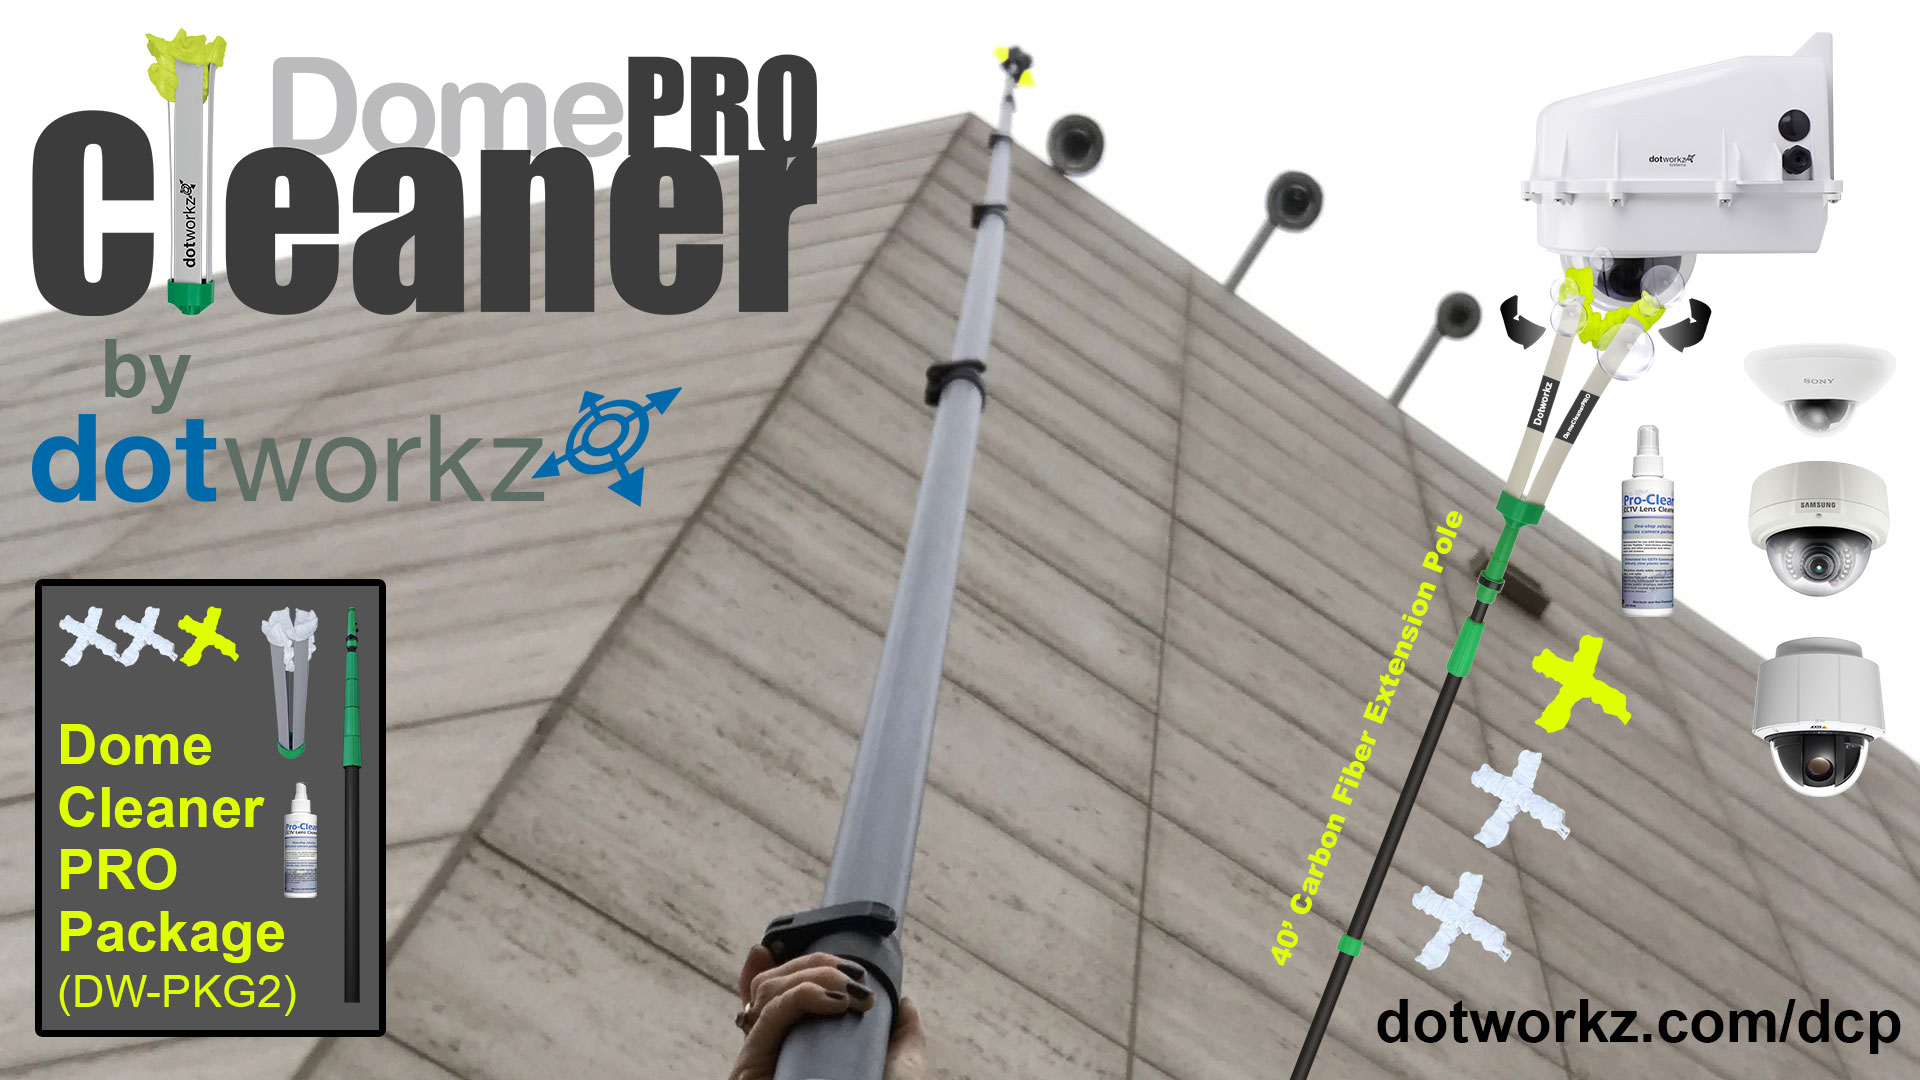 DomeCleanerPRO (Carbon Fiber Pole and MicroFiber Mitts